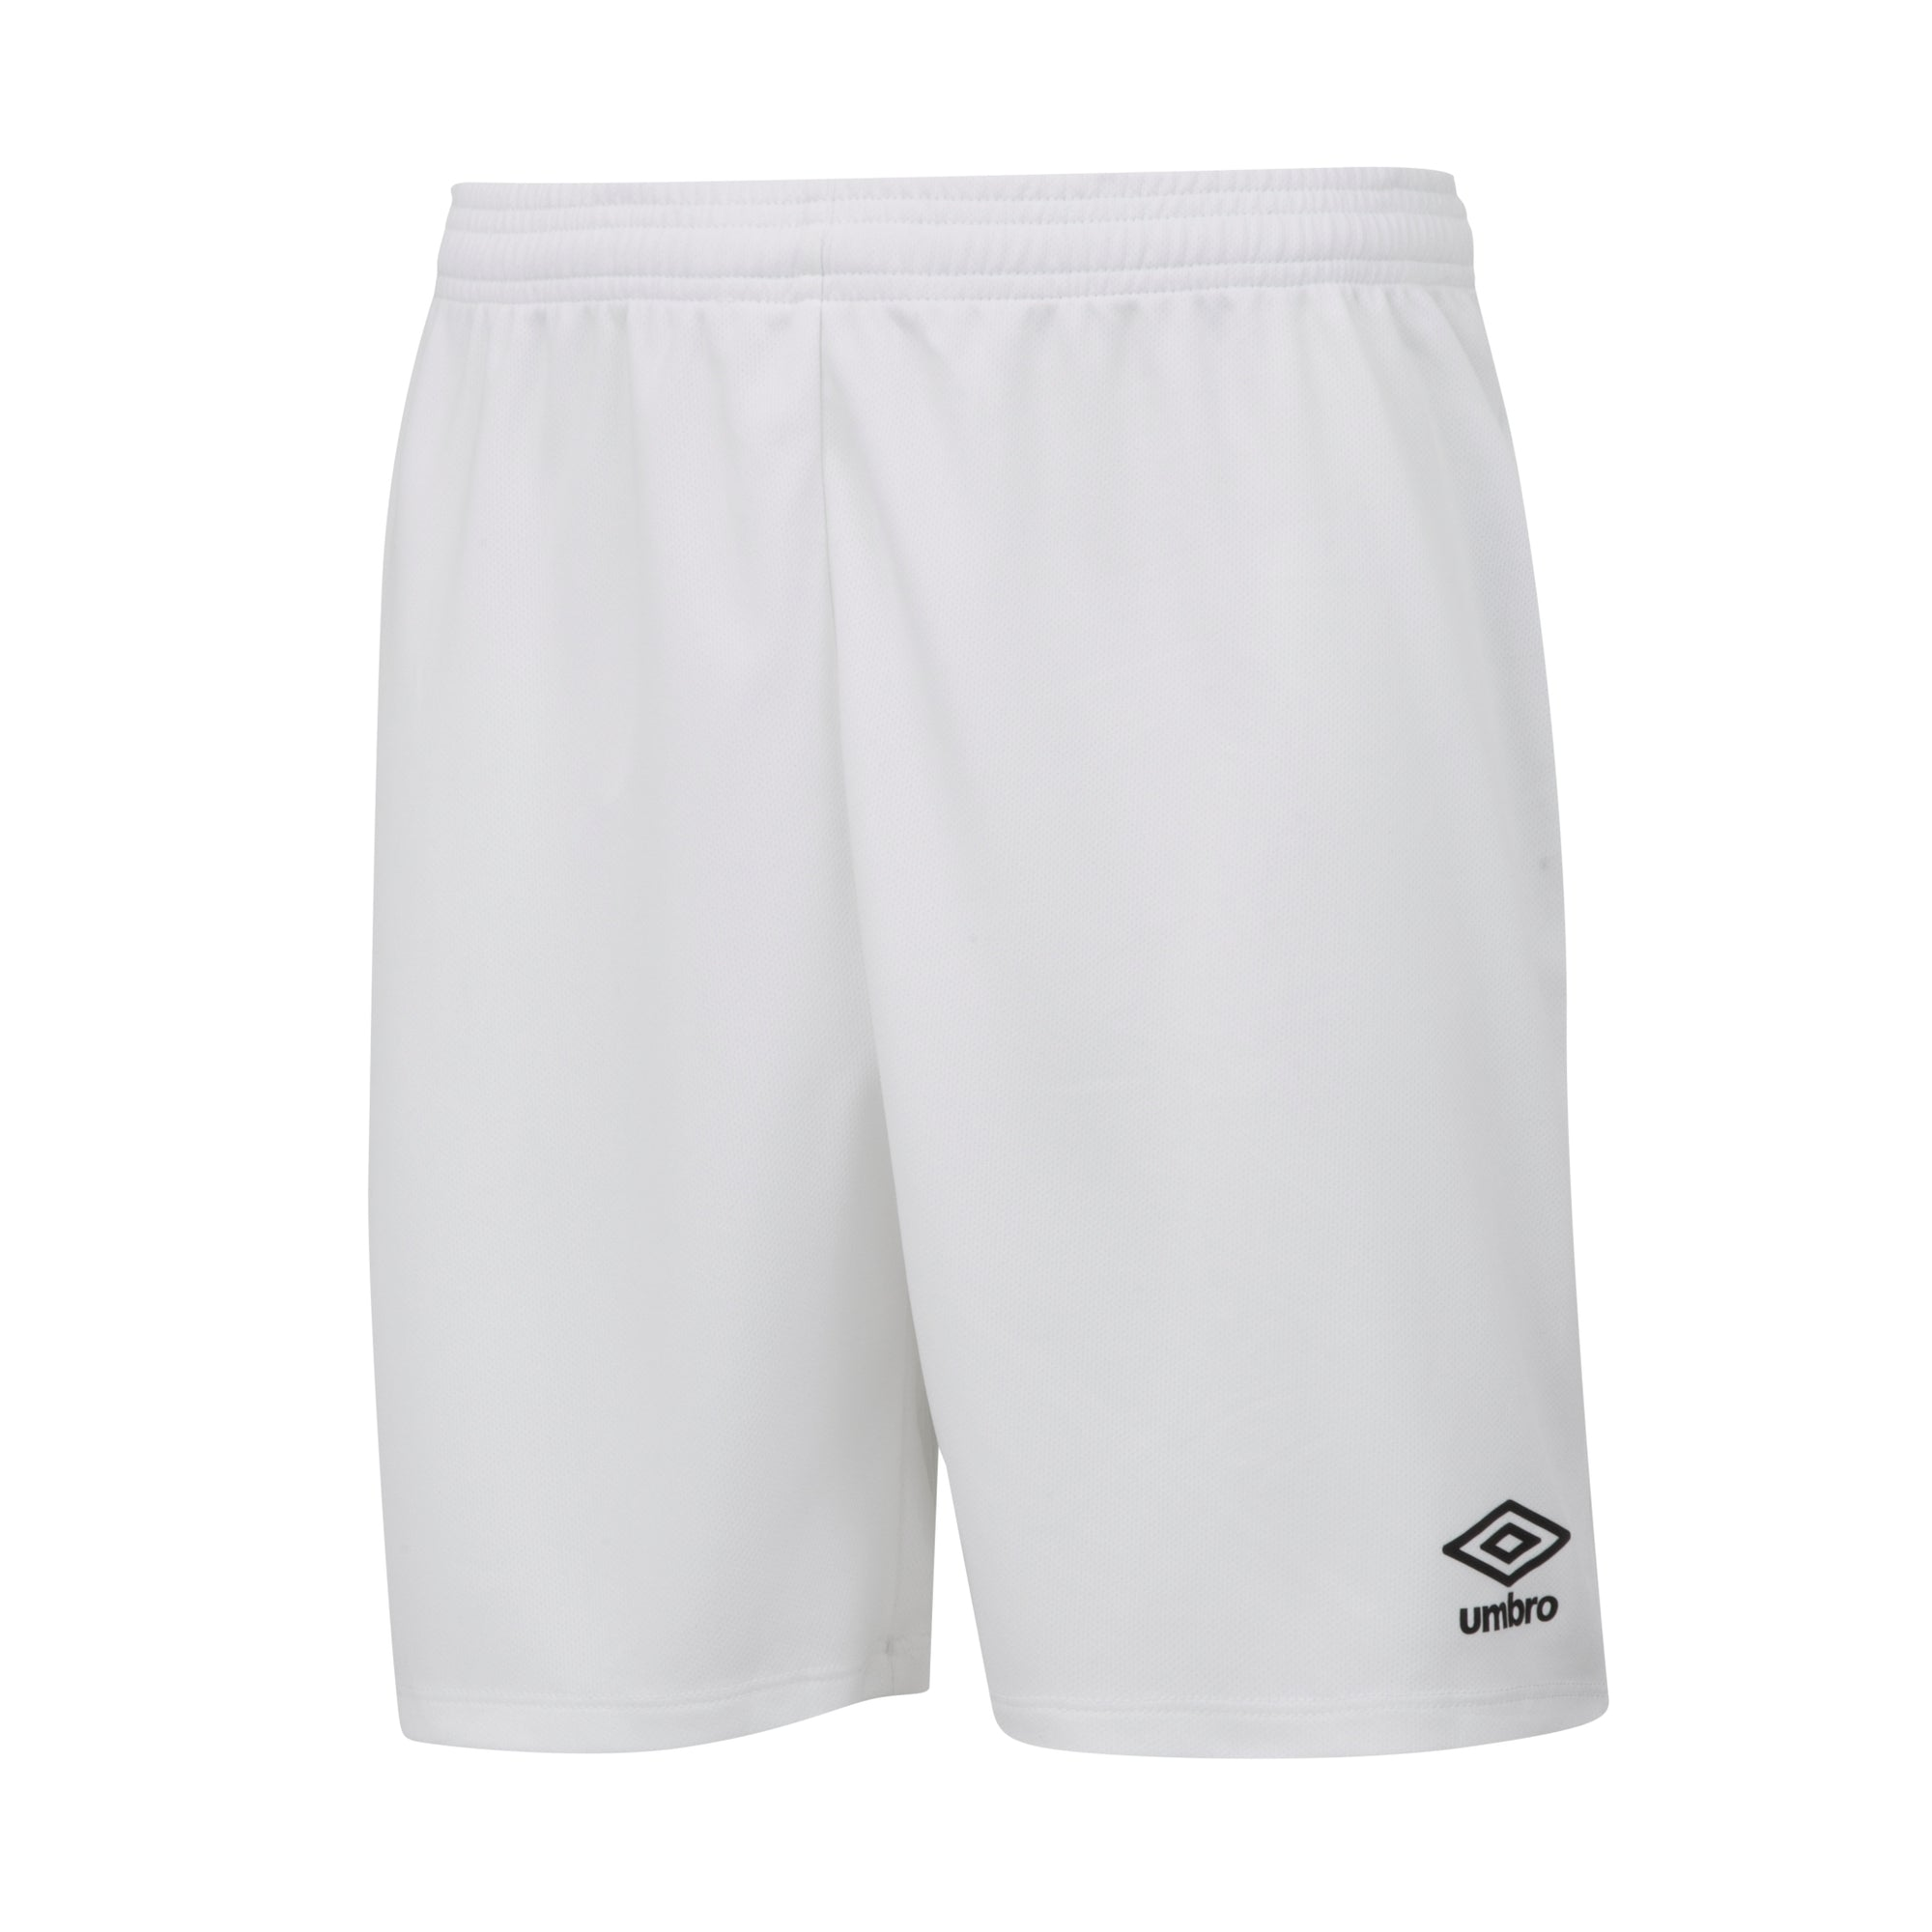 Umbro Club Short II - White